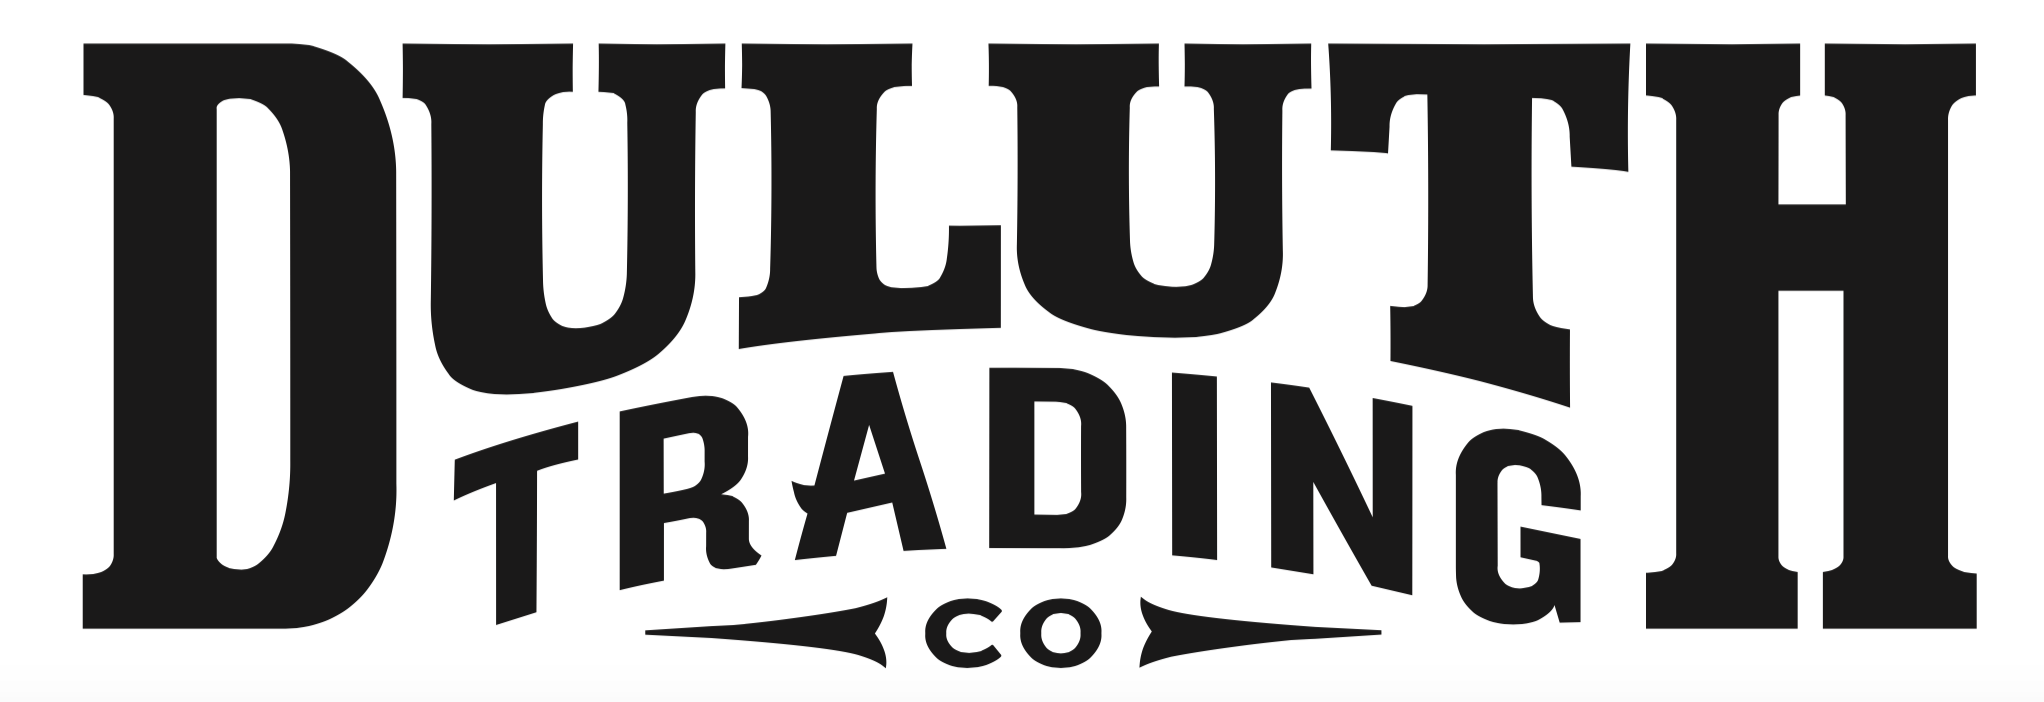 Nov 25,  · And it's a store like no other. The only place where you can see, touch, try on our full selection of innovative, problem-solving Duluth Trading work clothes for men and women/5(15).